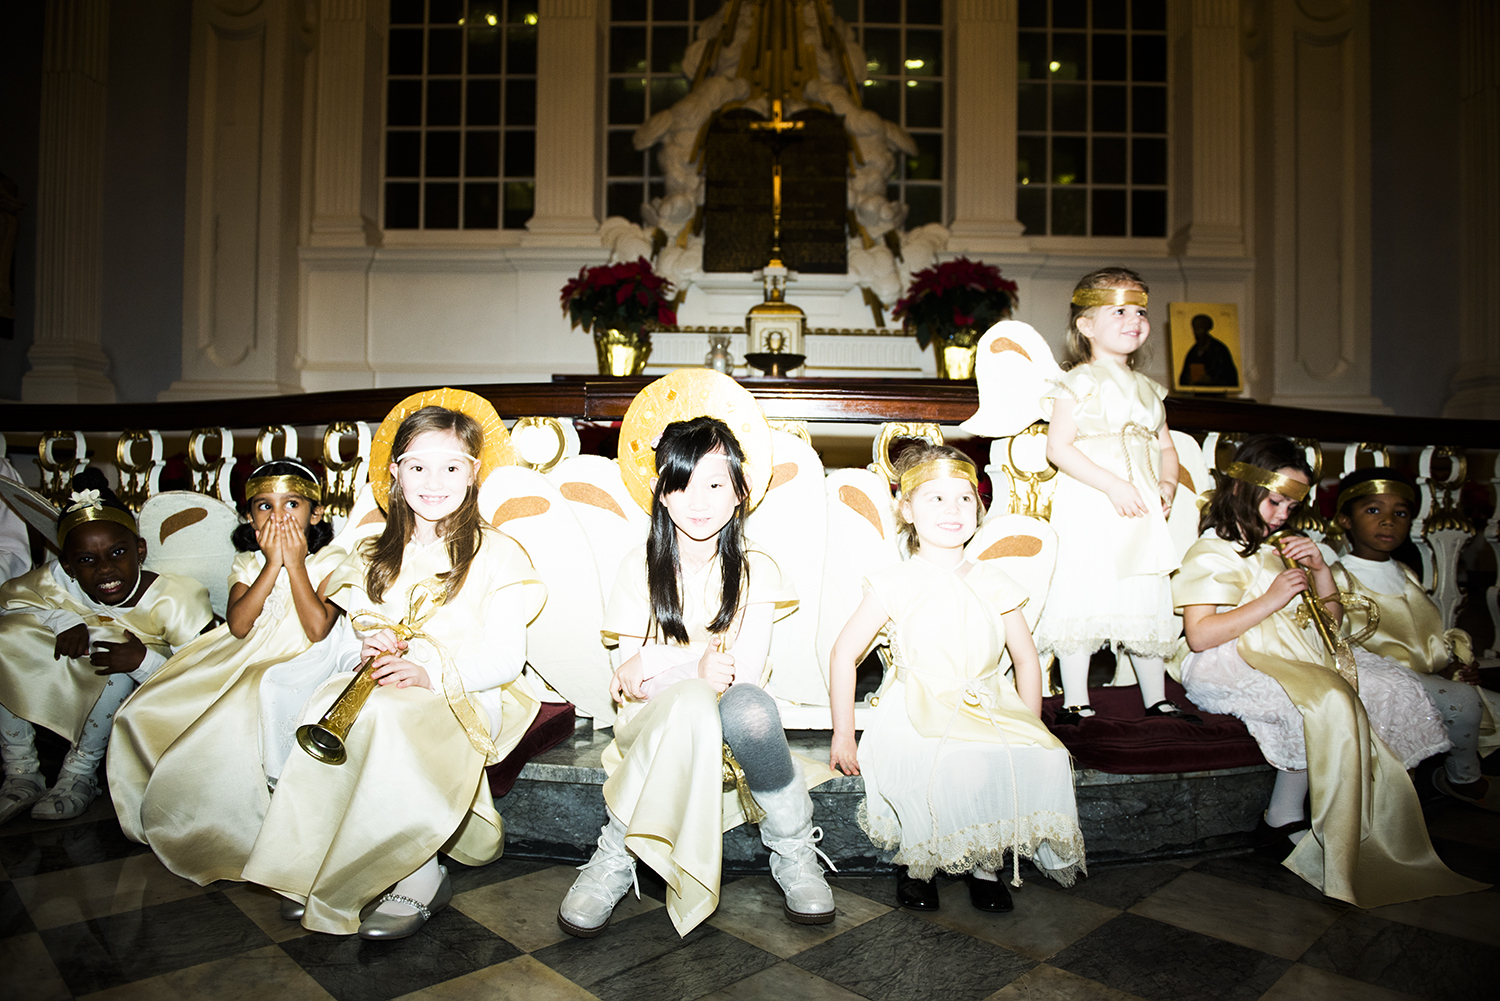 little angels waiting to play their roles for the Nativity play at St Paul's Chapel in Lower Manhattan, NY.2015  ©    Go Nakamura     photography